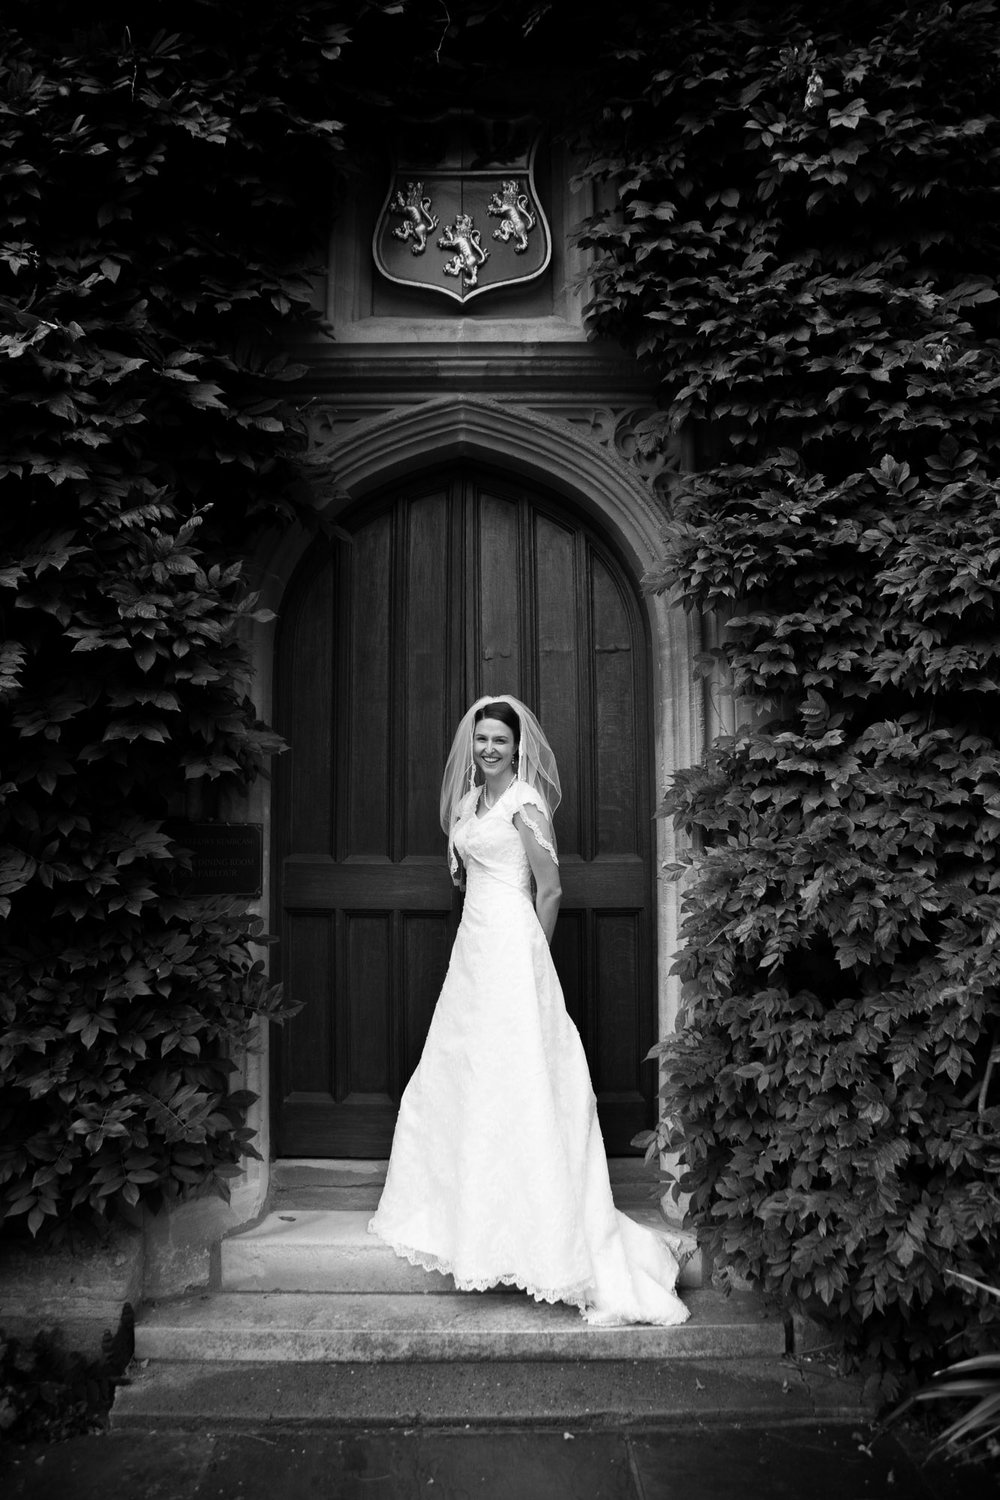 weddings-couples-love-photographer-oxford-london-jonathan-self-photography-59.jpg